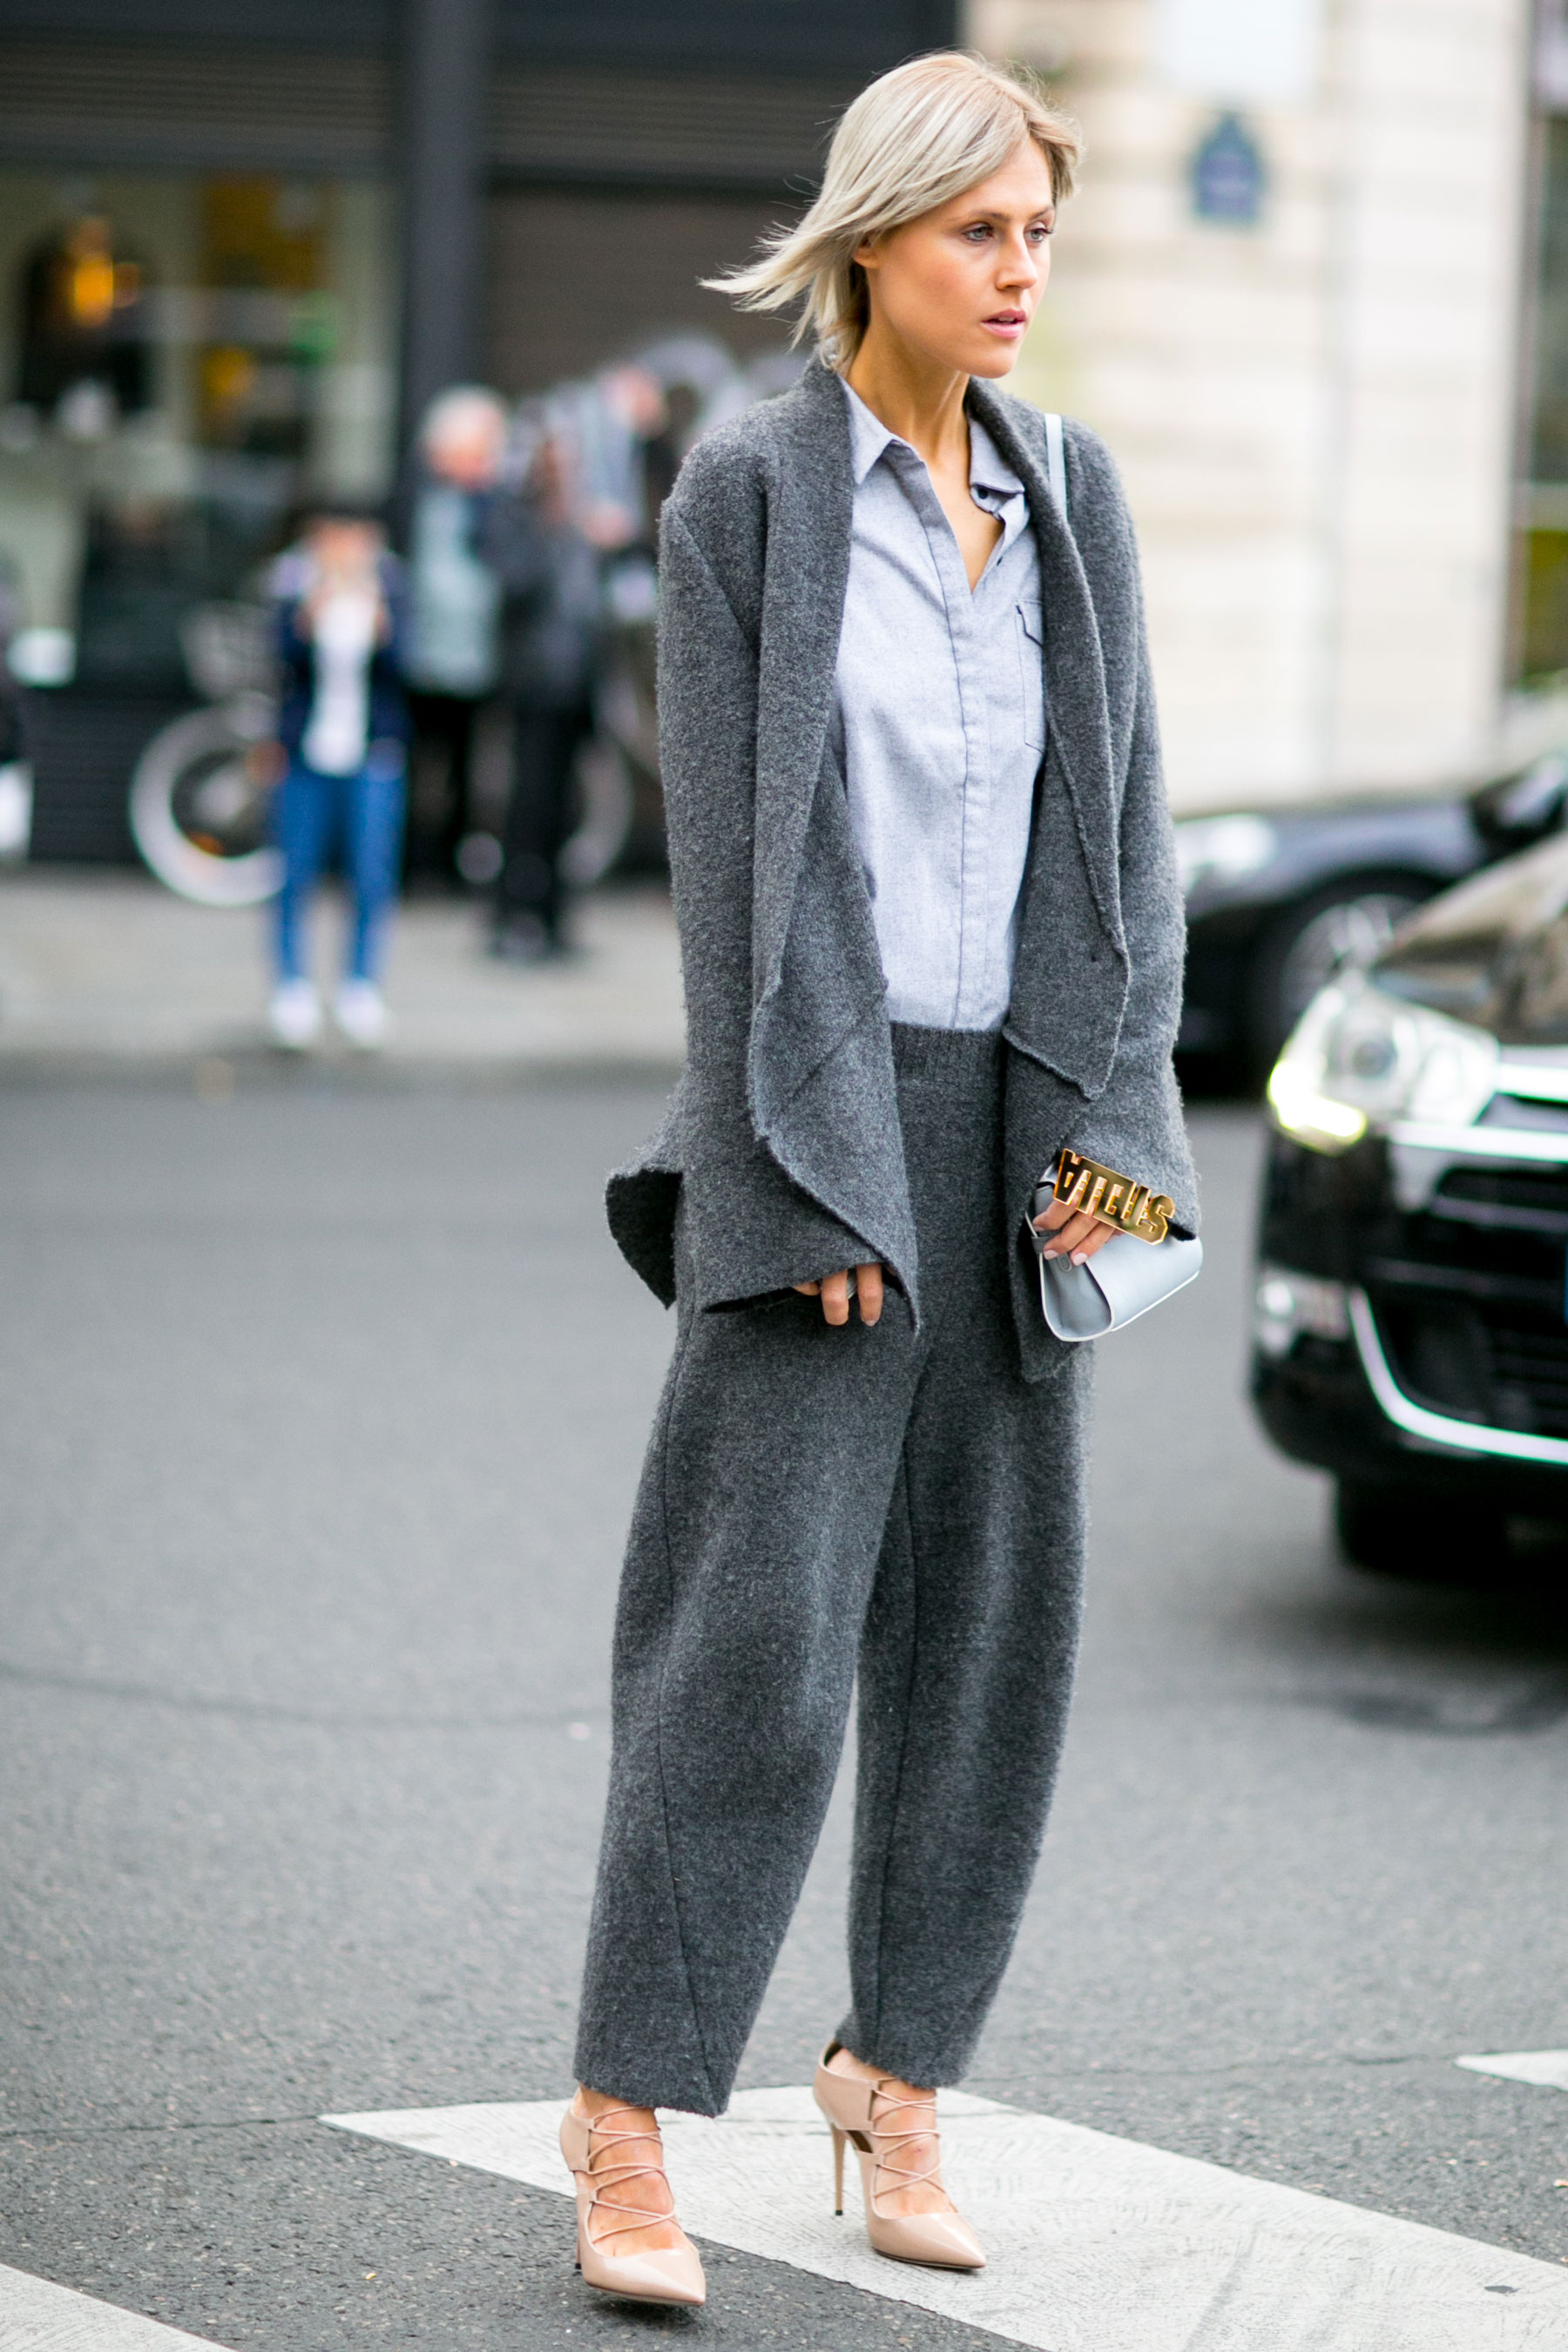 Paris-fashion-week-street-style-day-7-october-15-the-impression-22